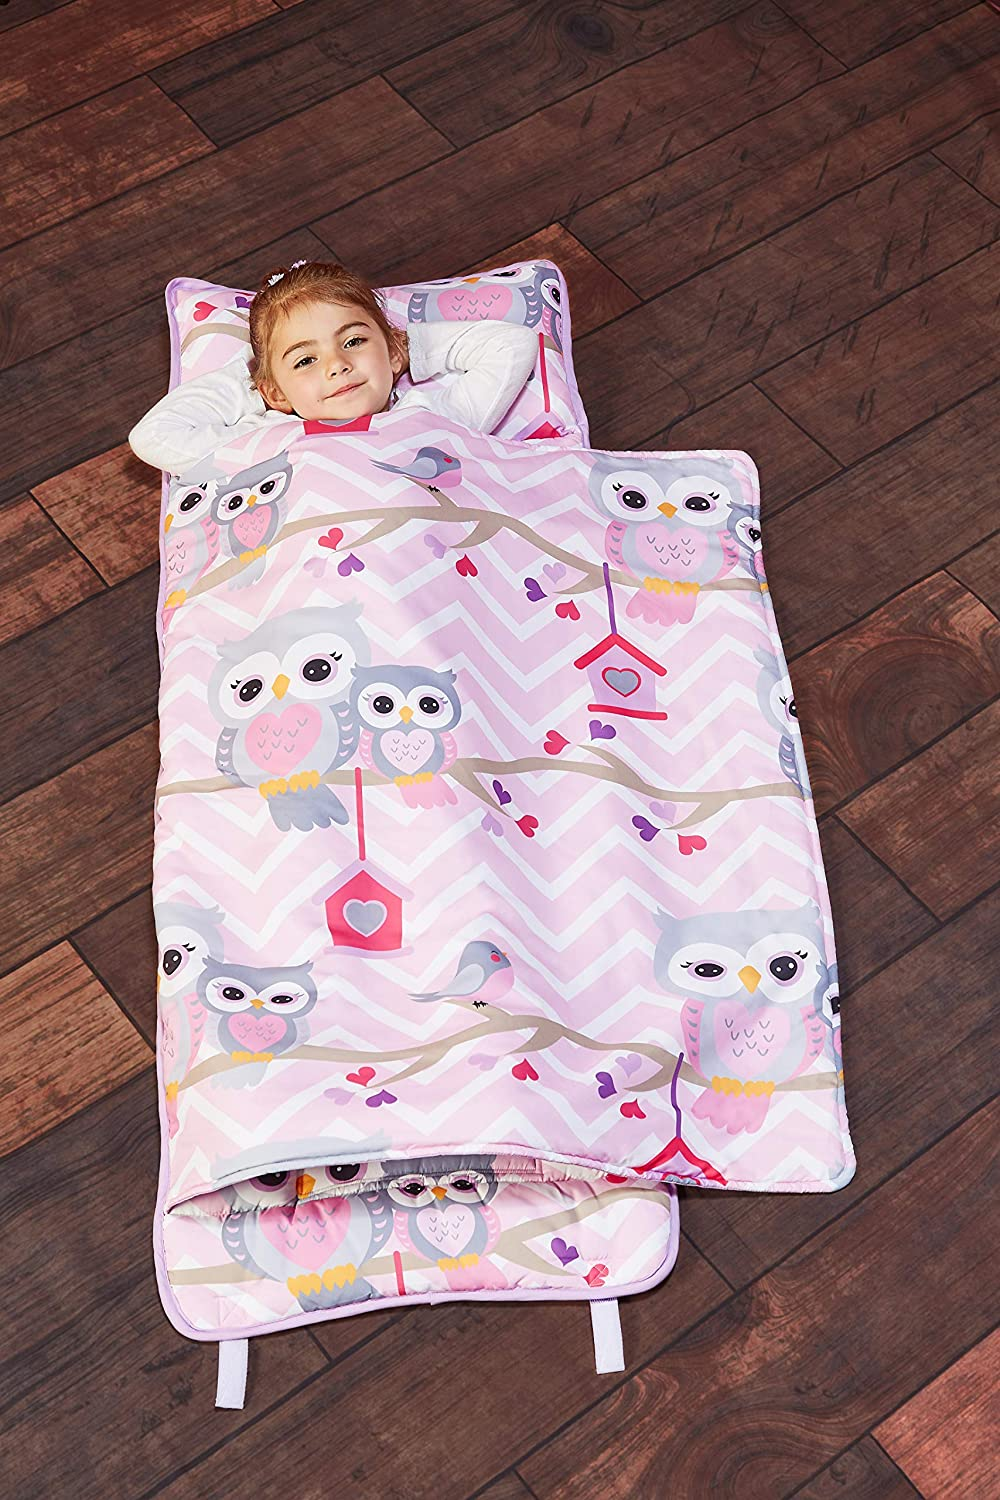 EVERYDAY KIDS Toddler Nap Mat with Removable Pillow - Sweet Owls - Carry Handle with Straps Closure, Rollup Design, Soft Microfiber for Preschool, Daycare, Travel Sleeping Bag - Ages 3-6 Years